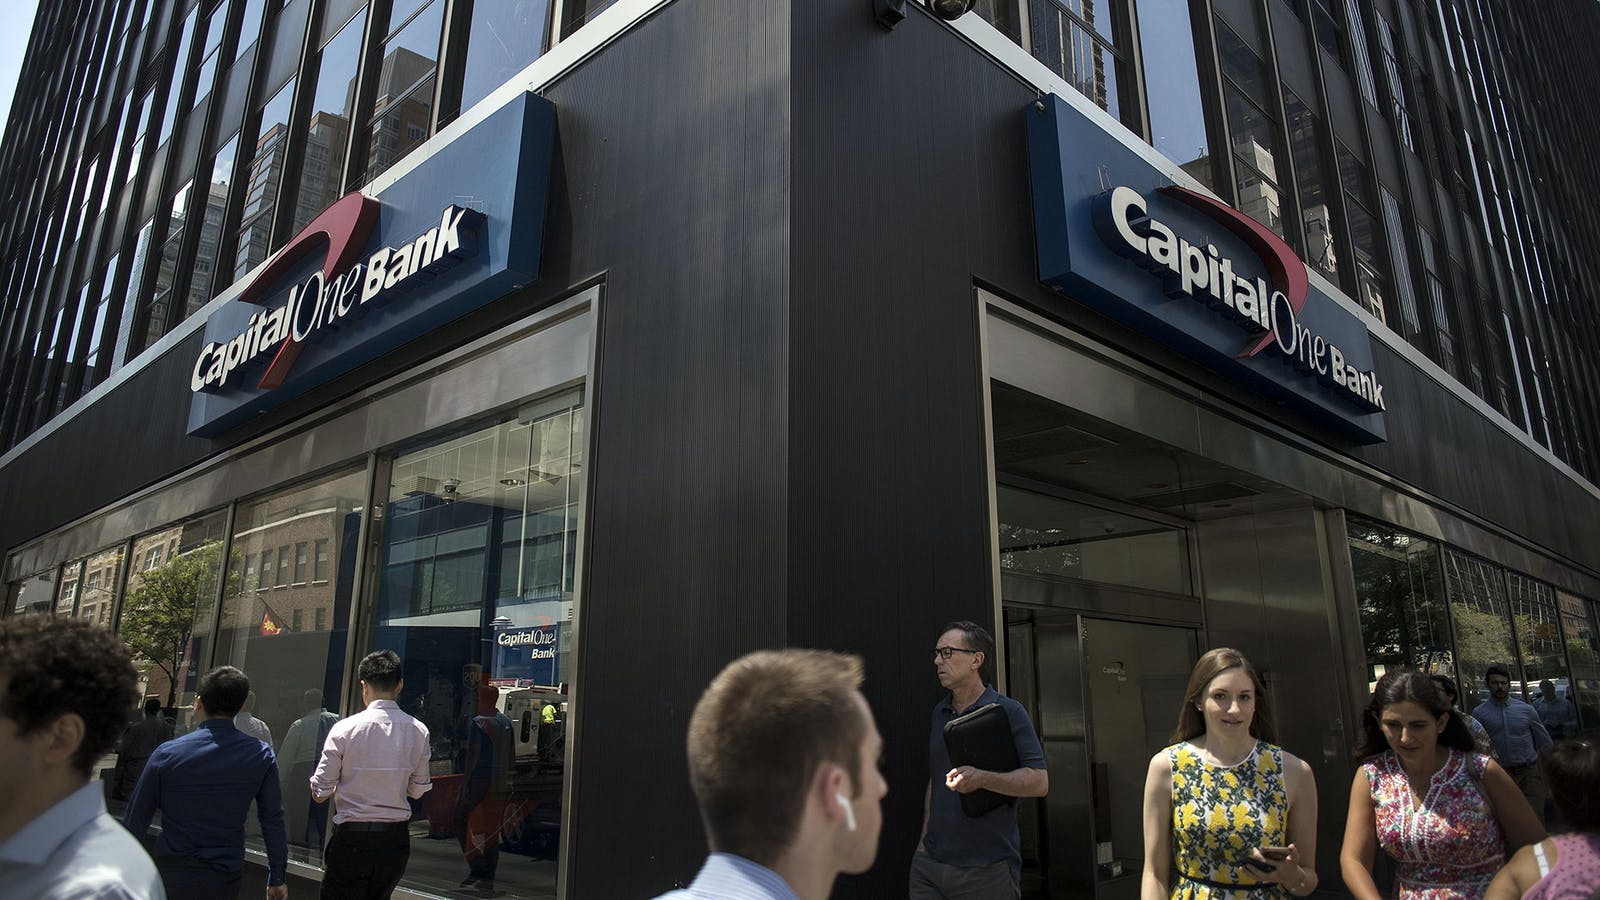 A Capital One branch in New York. Photo: Bloomberg